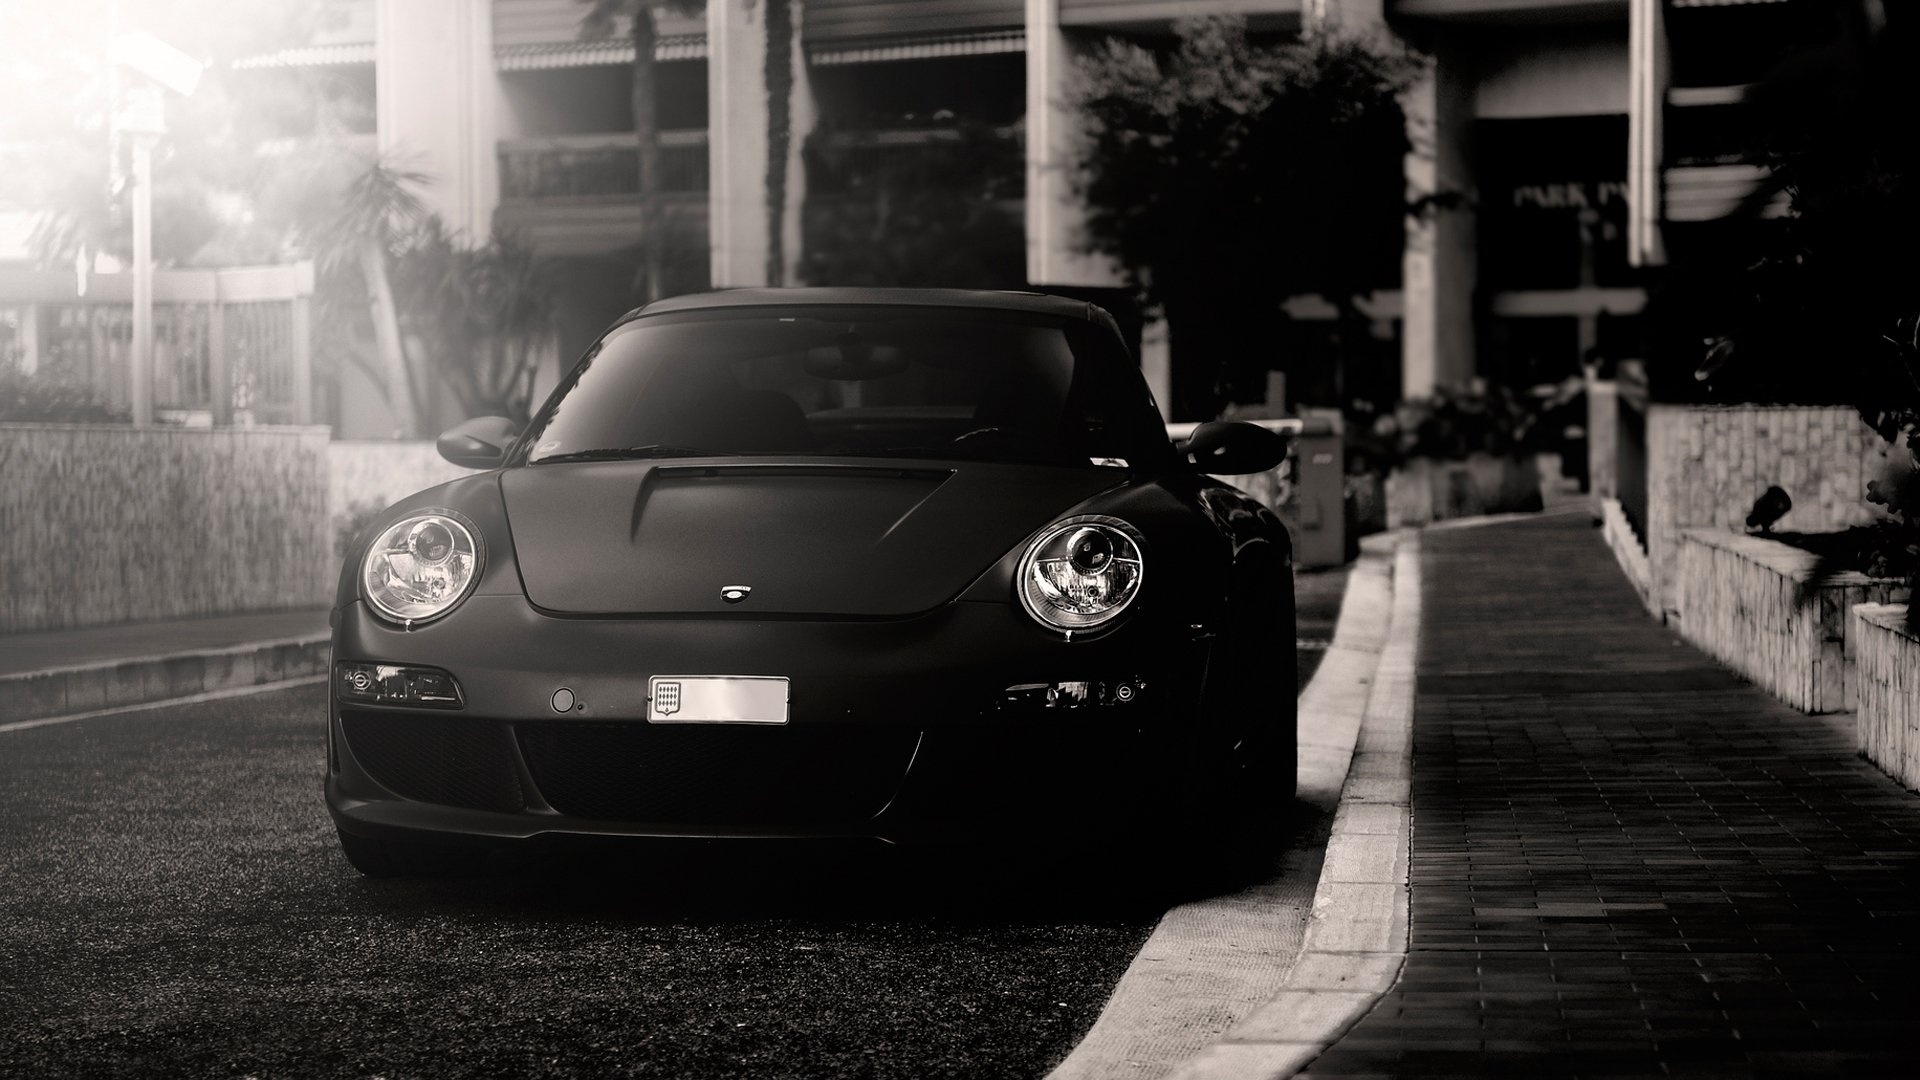 Porsche best background